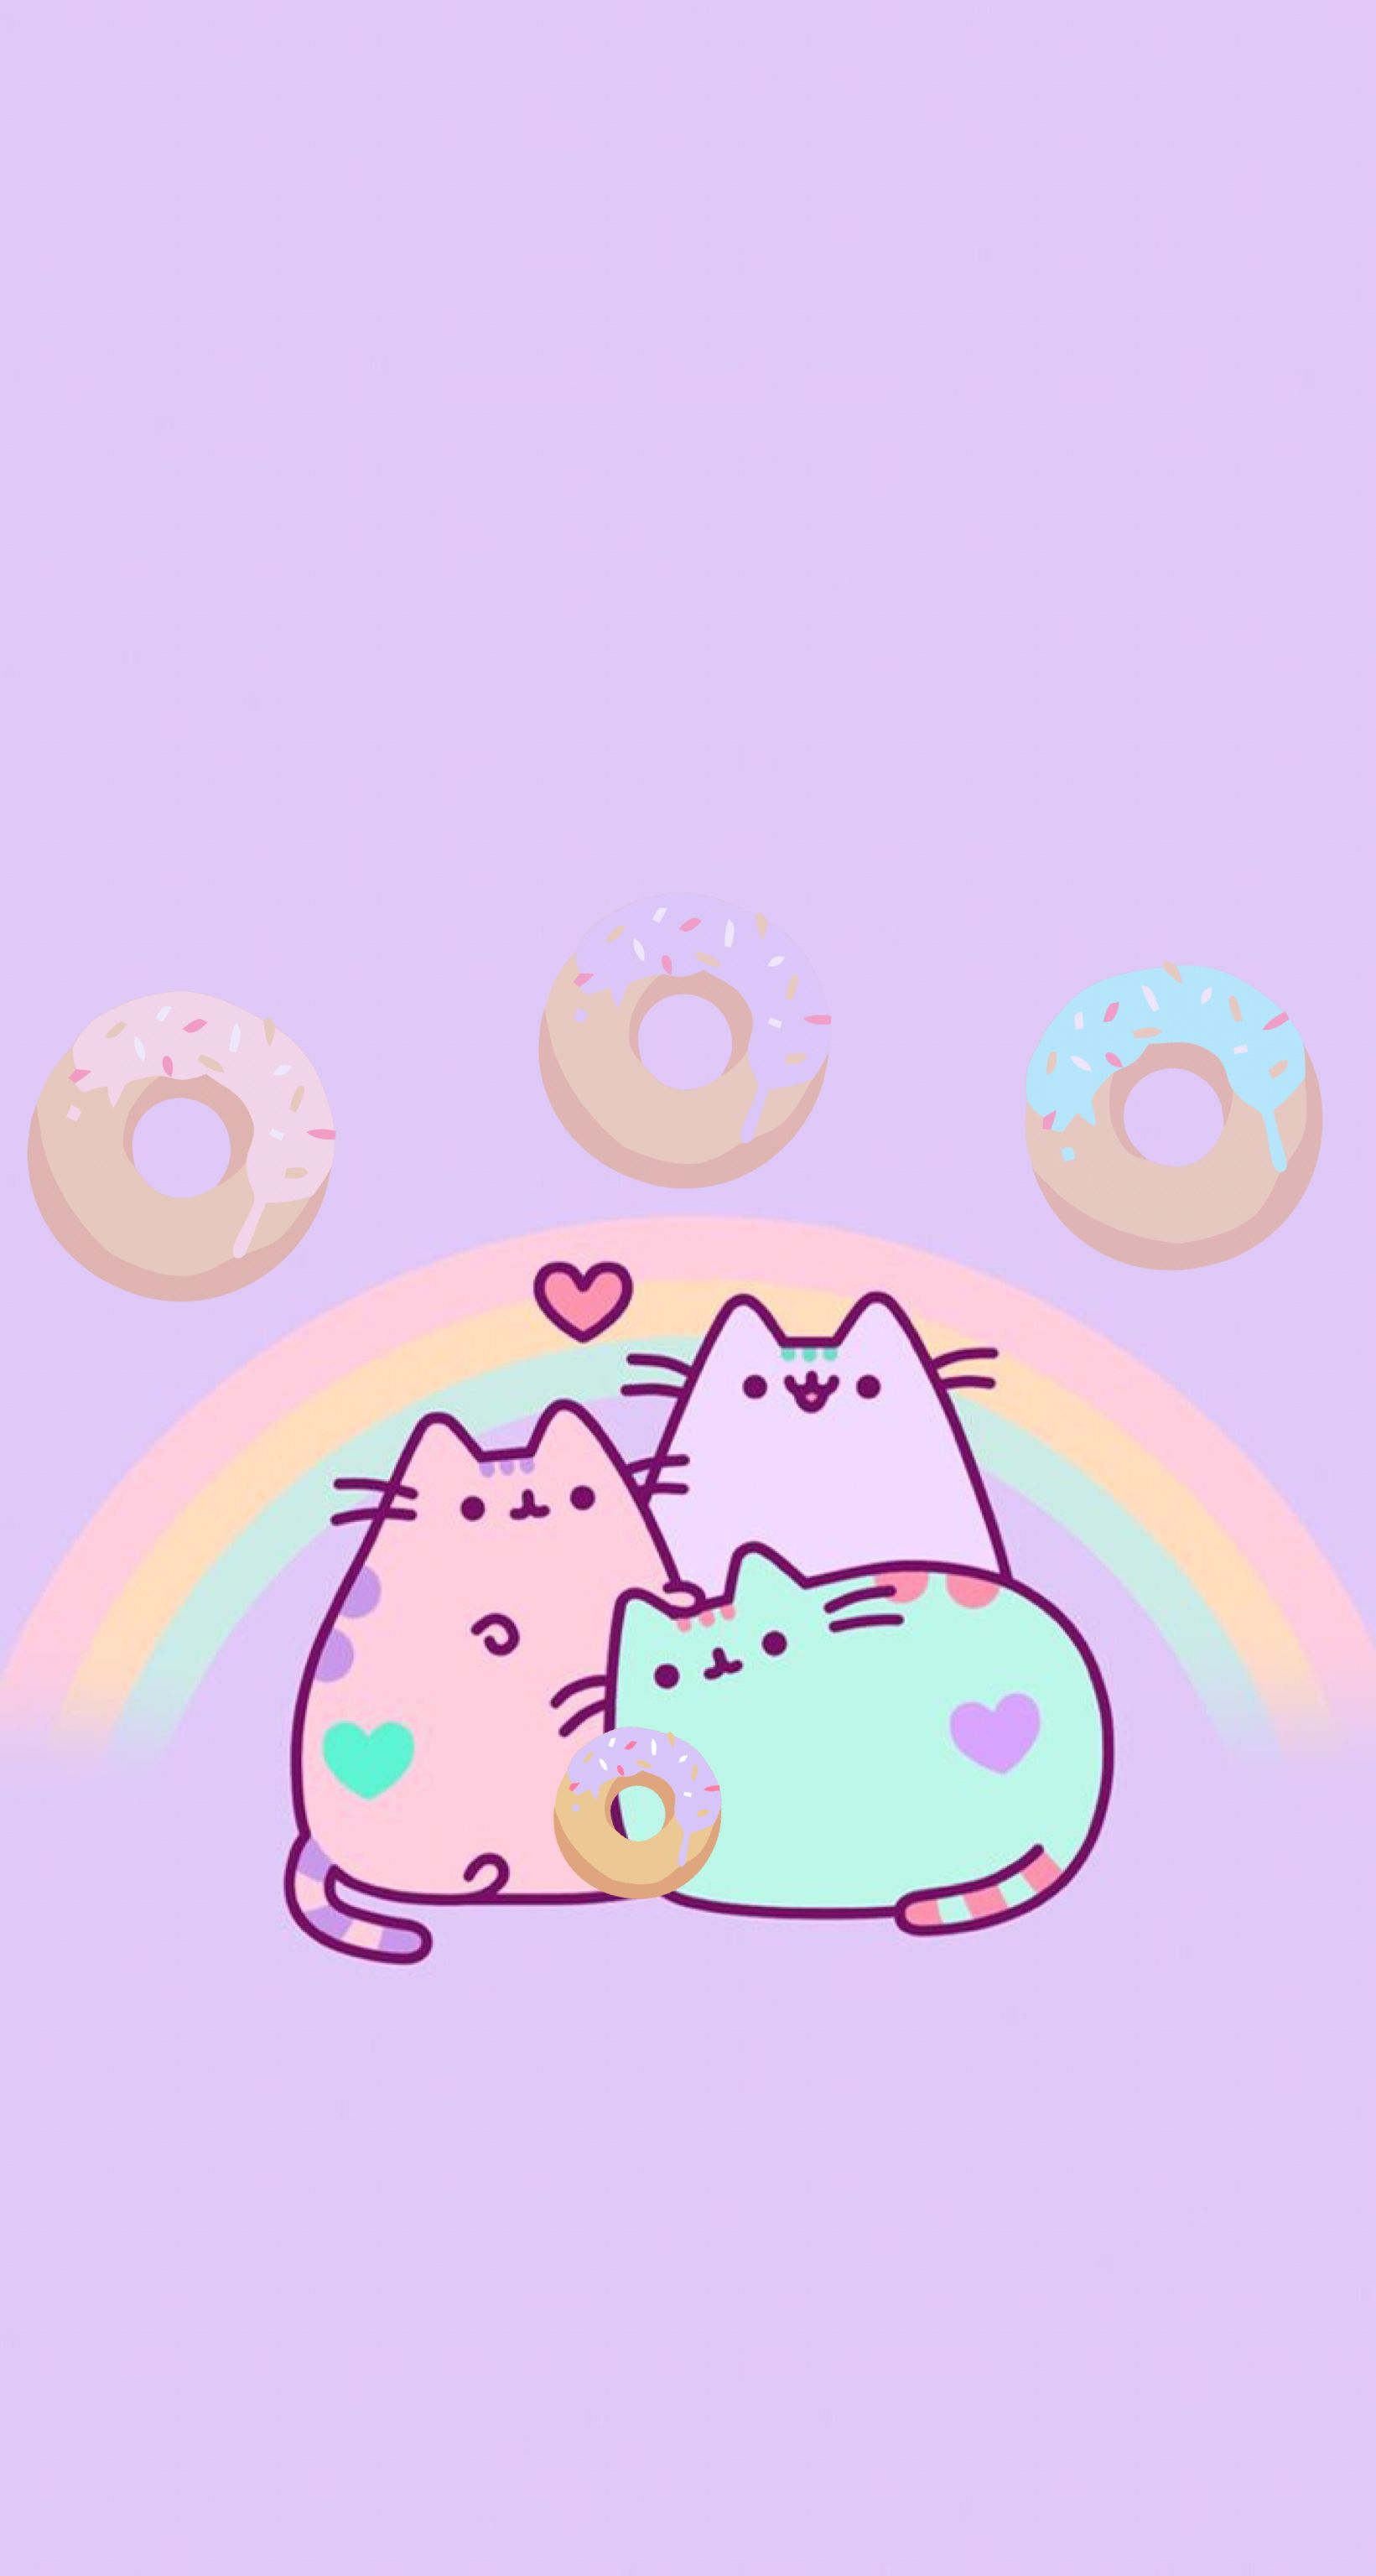 Rainbow Pusheen Wallpapers Top Free Rainbow Pusheen Backgrounds Wallpaperaccess